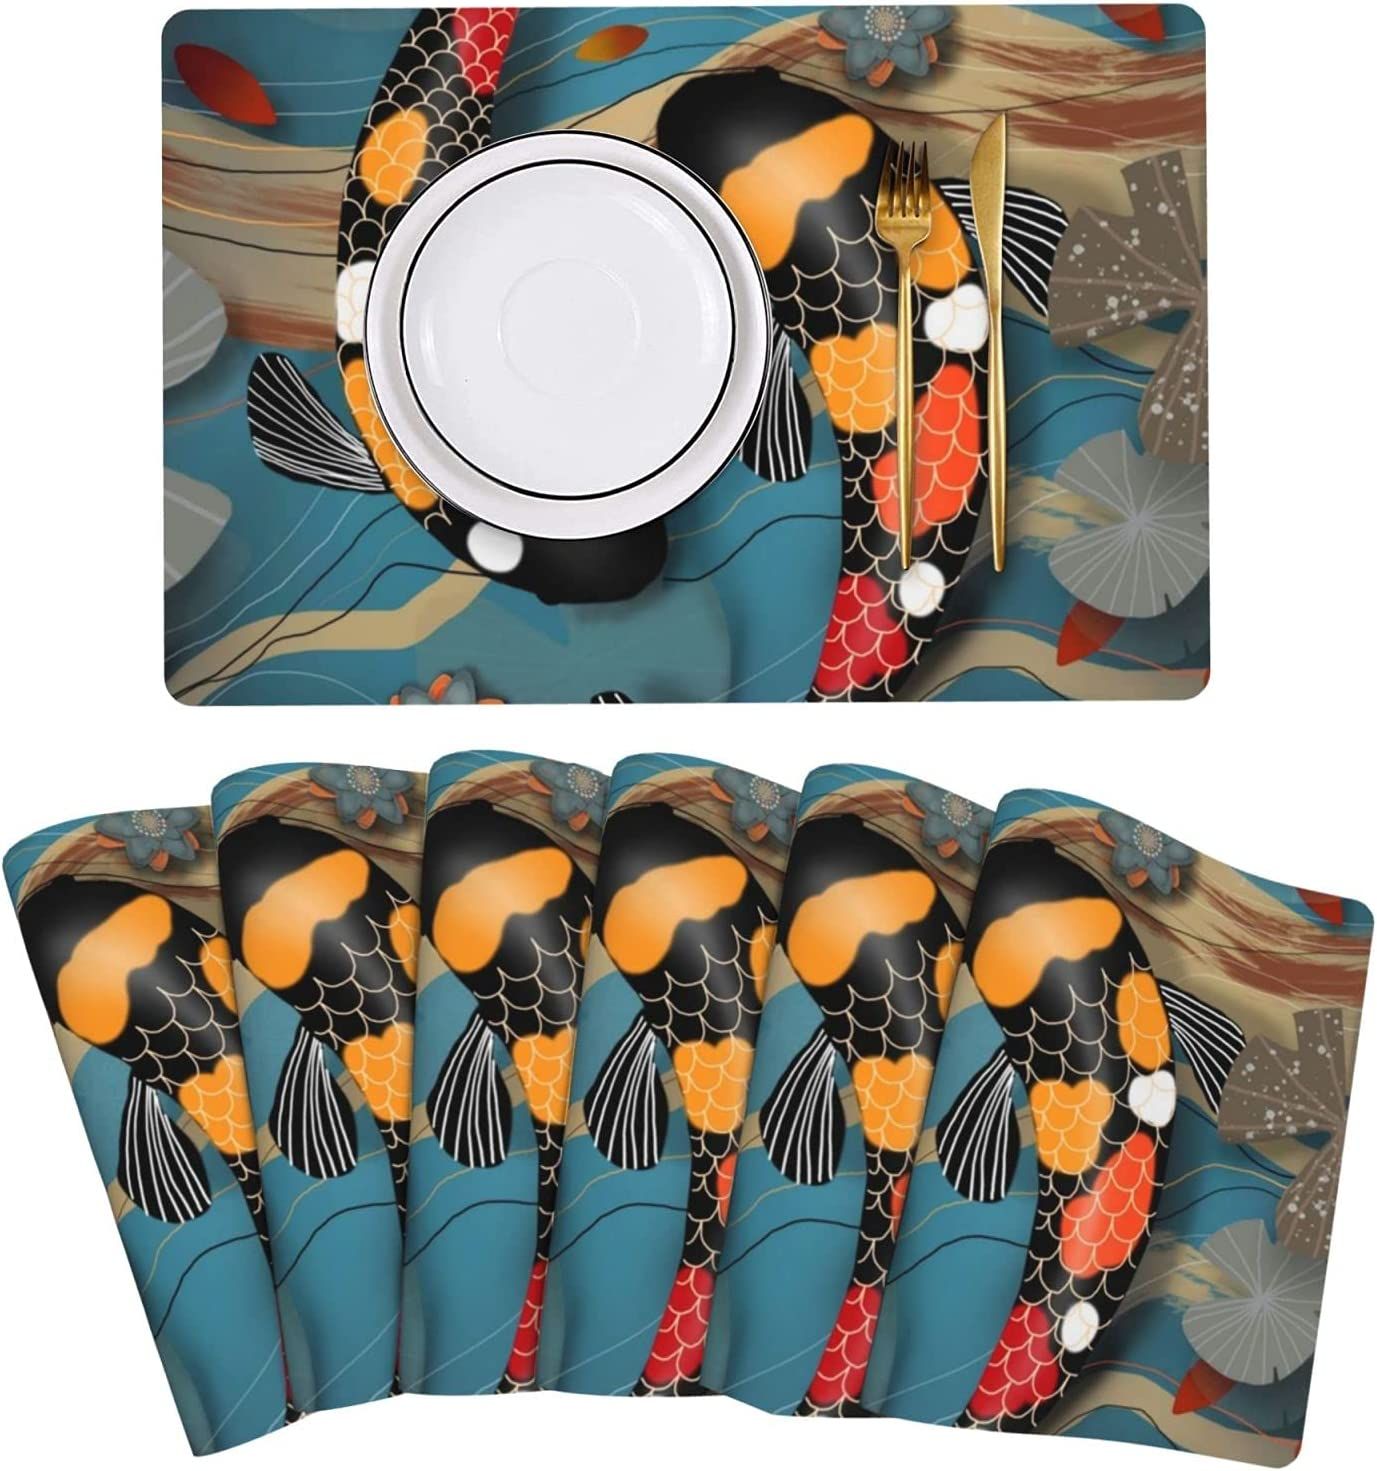 Koi Watergarden Placemat Leather Table 25% OFF Mats Cle Easy of Set 6 to Directly managed store